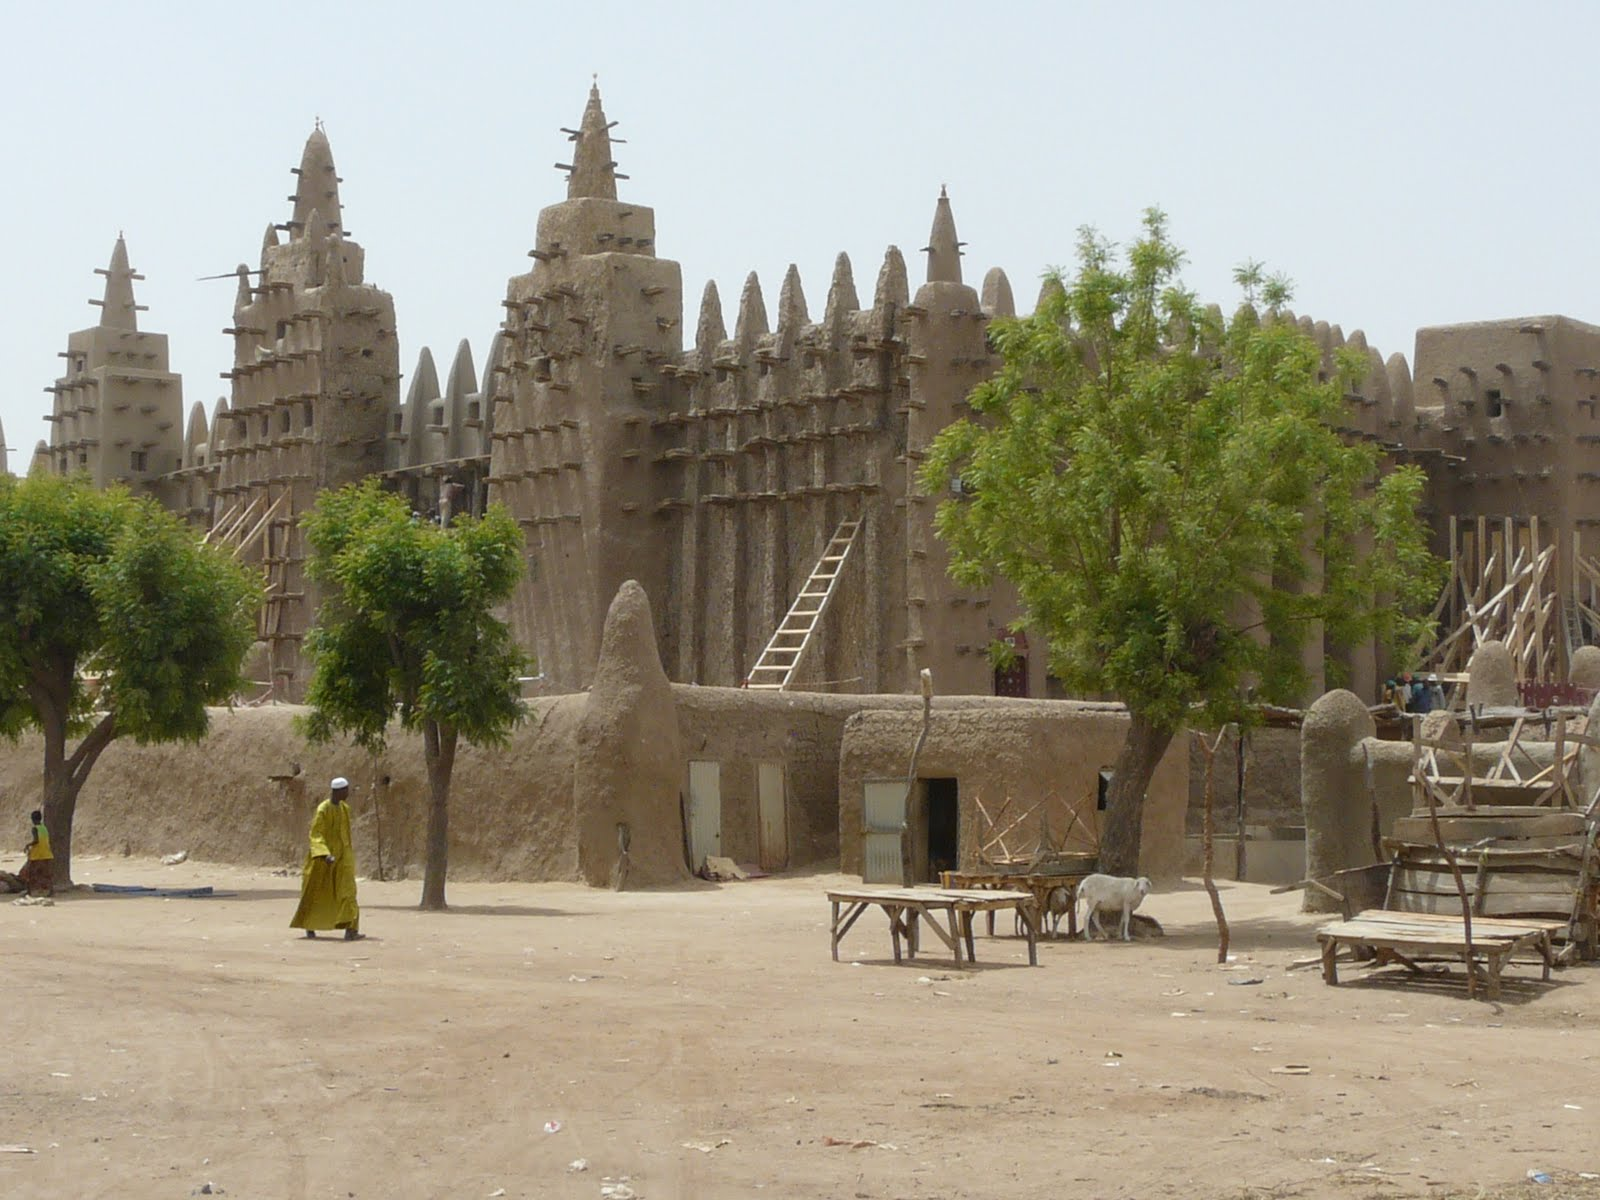 Galerry Mali Africa The Great Mosque In Djenne Overview Pictures to pin on